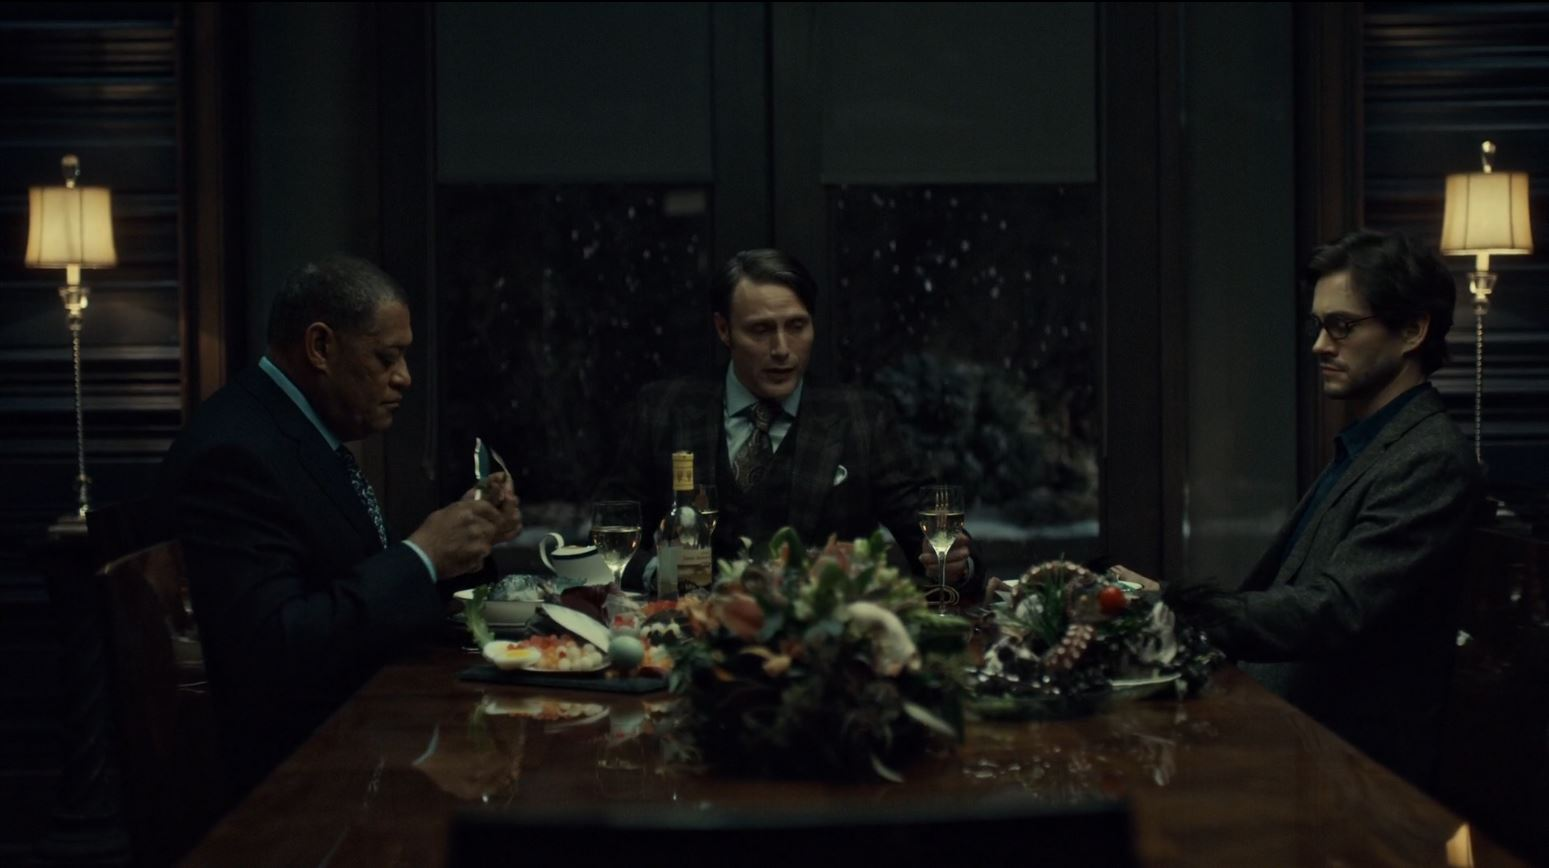 Hannibal Season 2 Episode 8 Su-zakana - Hannibal, Crawford and Graham eating fish